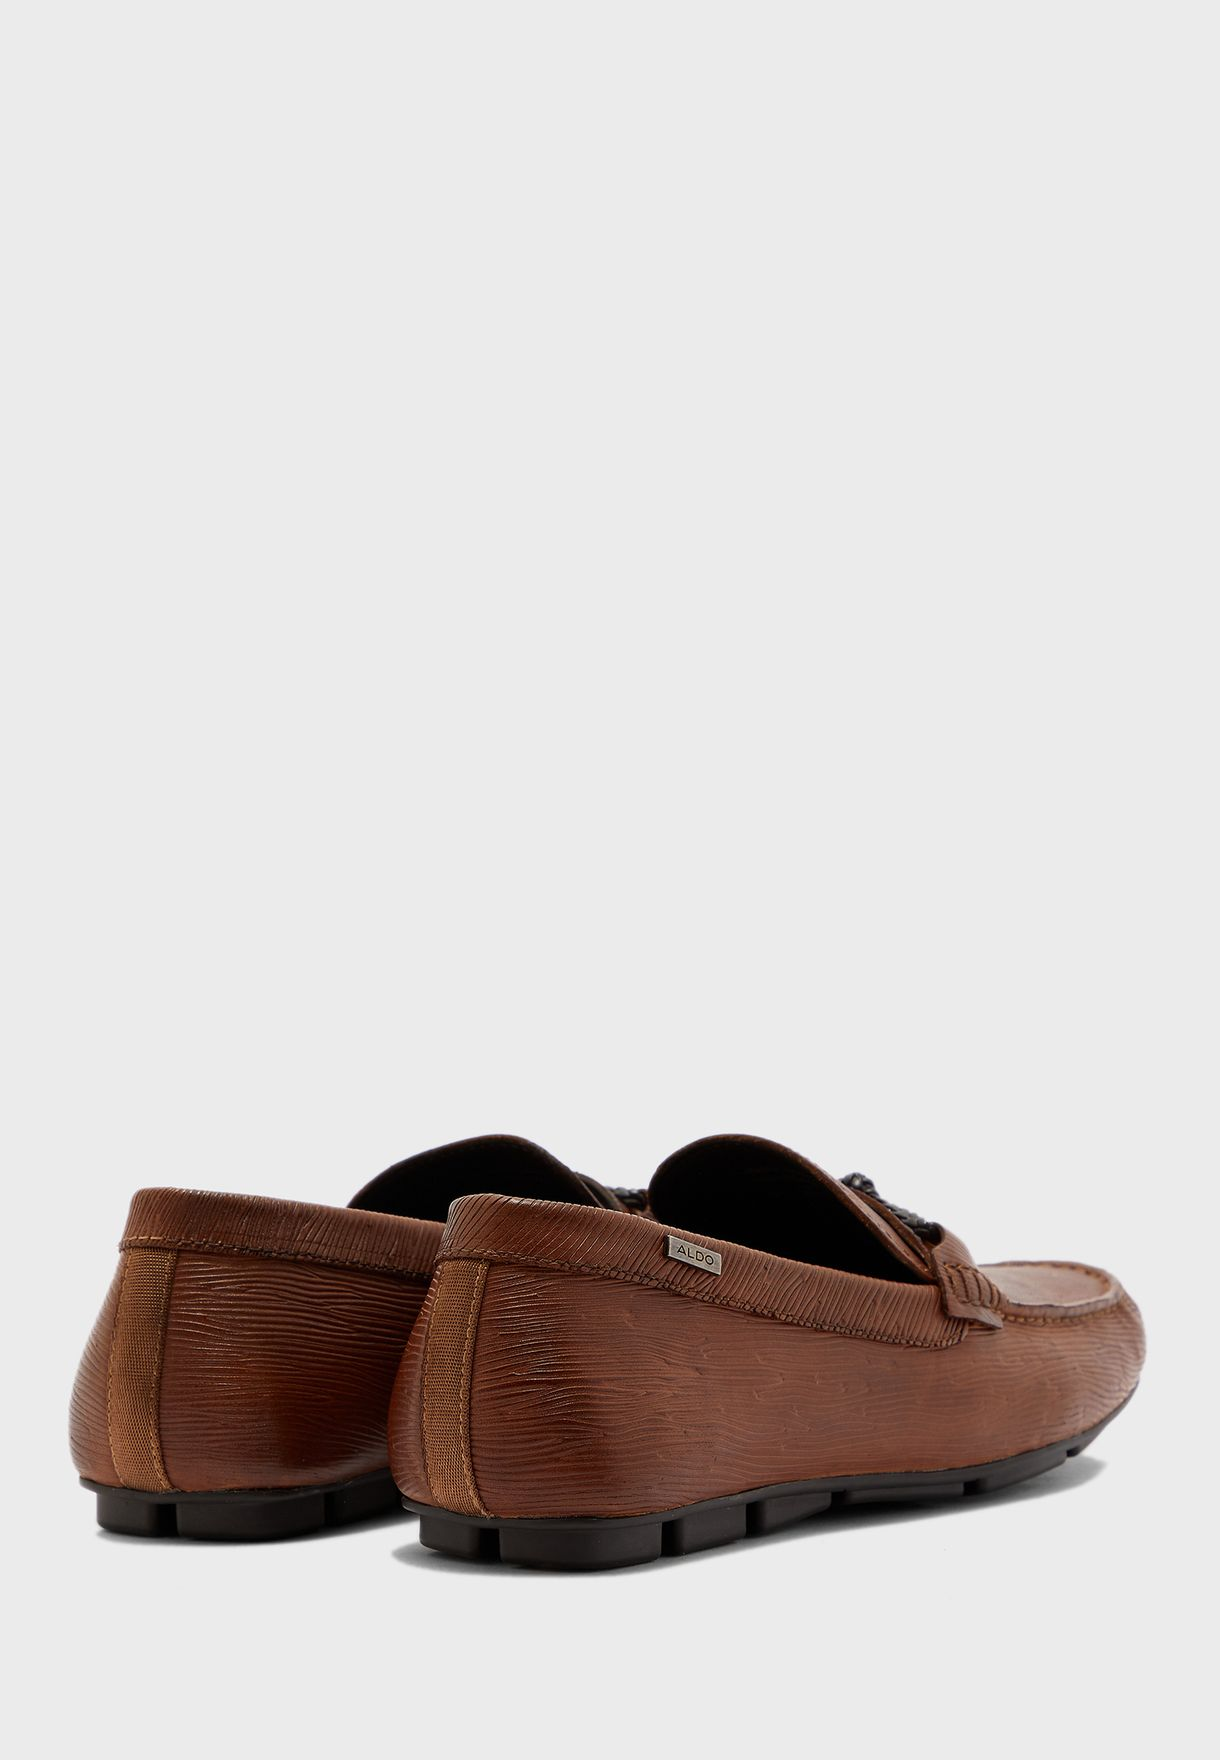 Barthes Moccasins